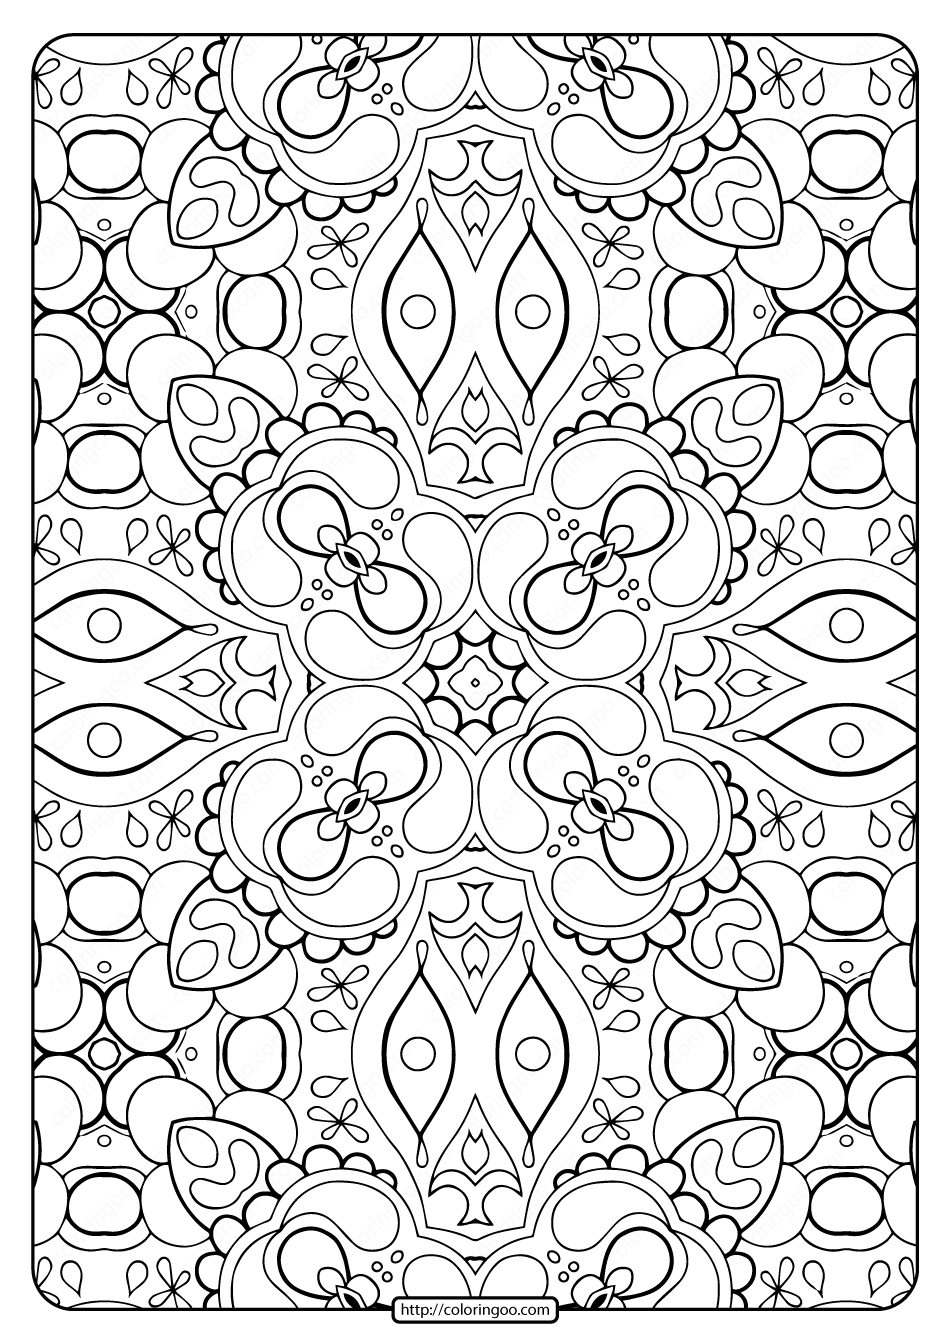 color in pages printable abstract pattern adult coloring pages 01 color in pages